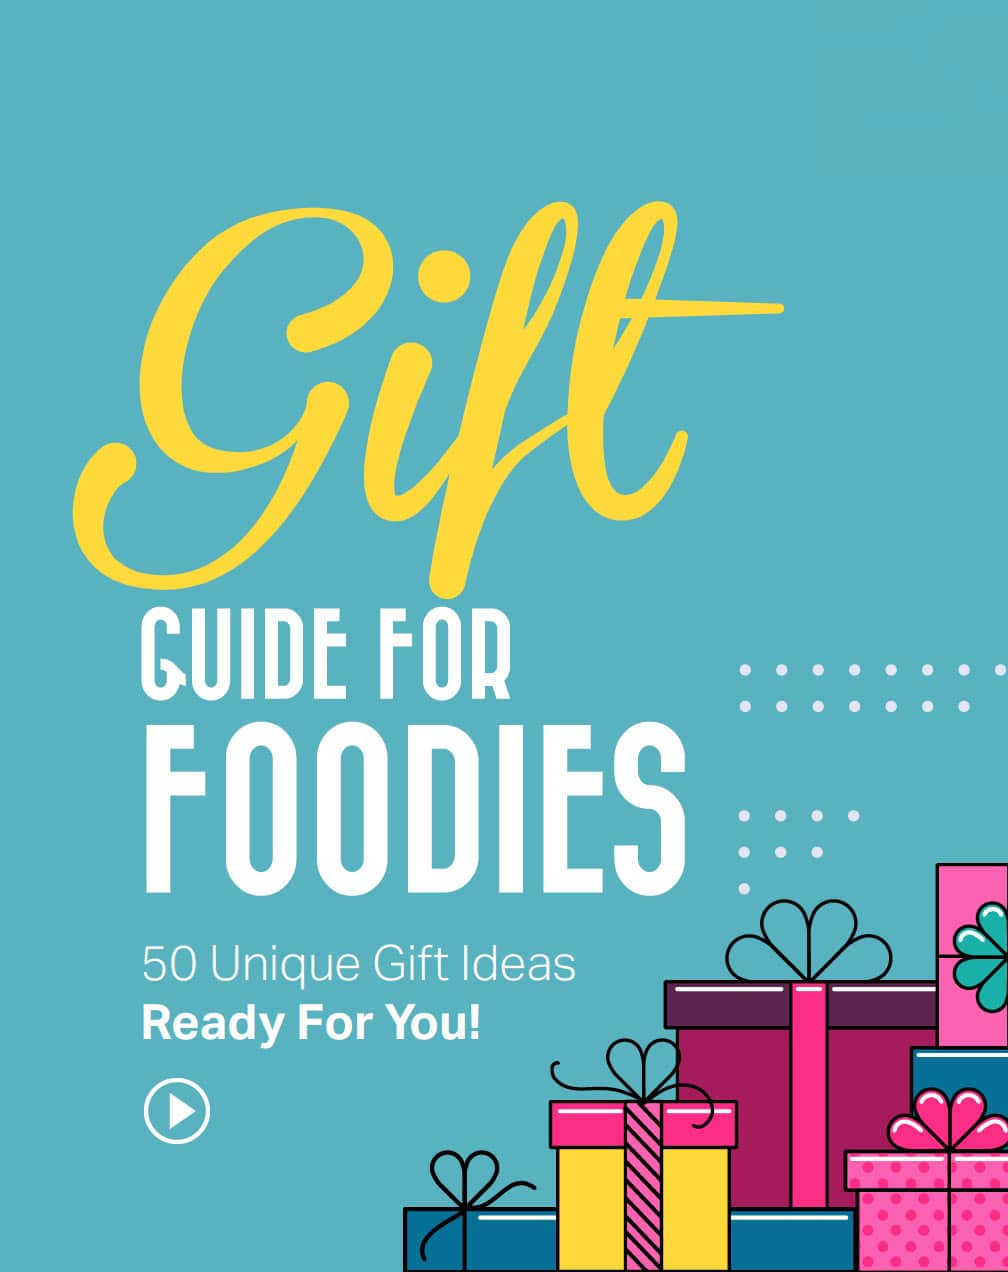 foodie gifts guide